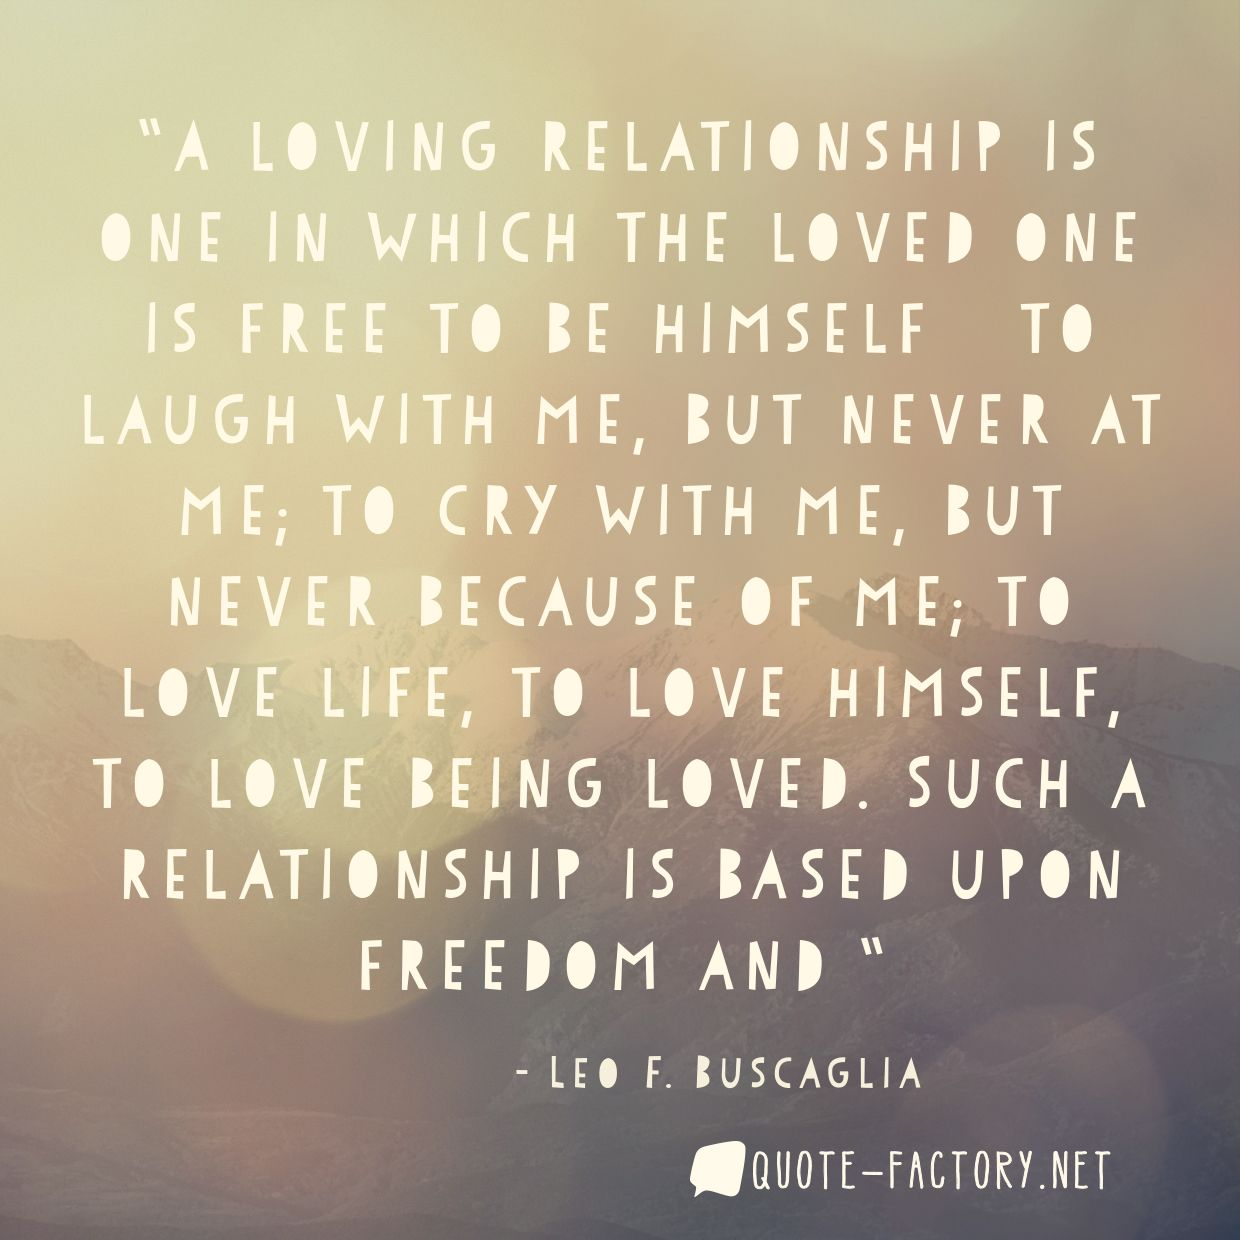 A loving relationship is one in which the loved one is free to be himself — to laugh with me, but never at me; to cry with me, but never because of me; to love life, to love himself, to love being loved. Such a relationship is based upon freedom and